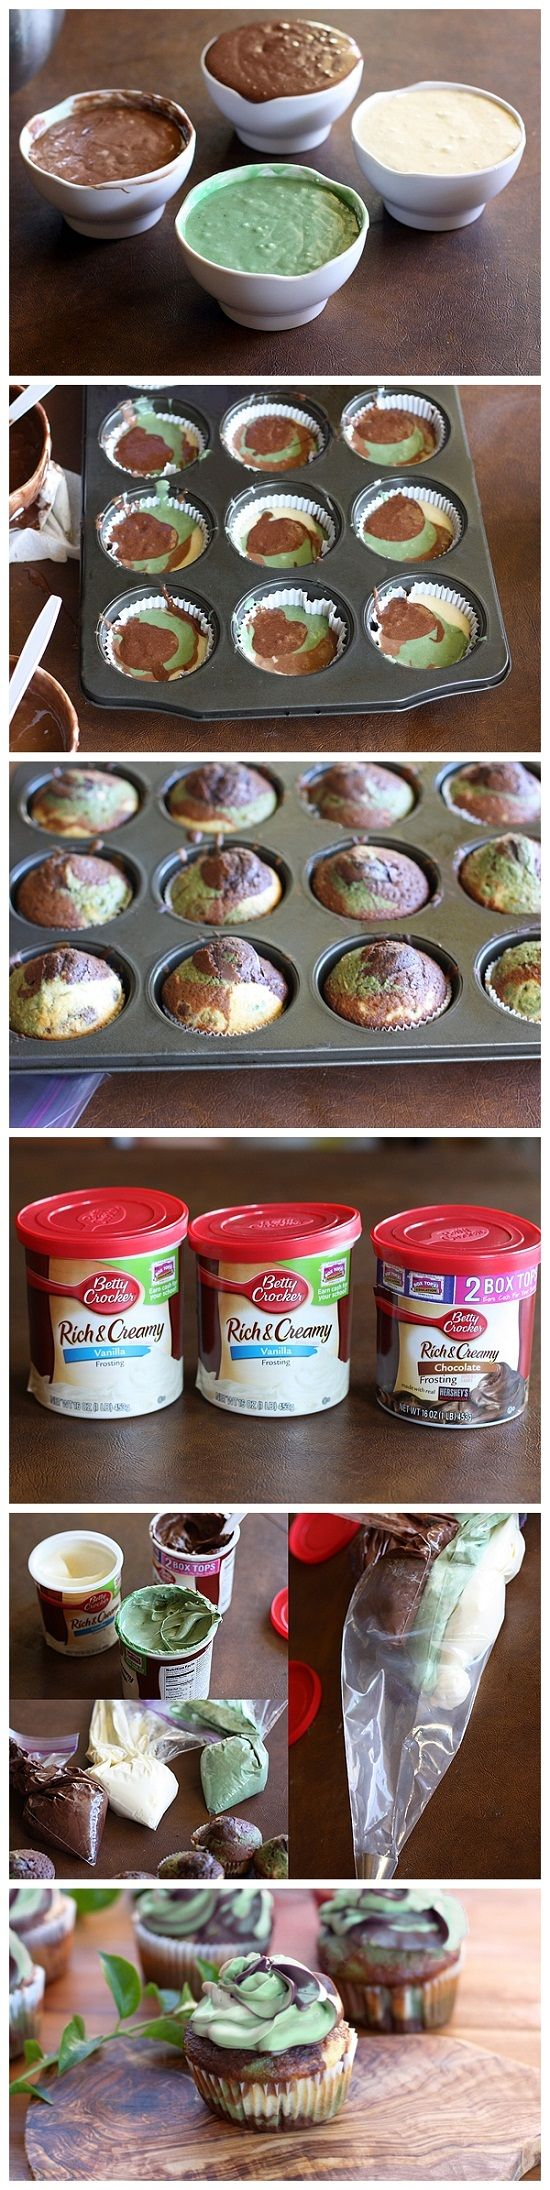 Gonna make these for Friday! ST: Just finished making these and my god, they look delicious! I used a homemade cupcake recipe instead of store bought but they still turned out fabulous!